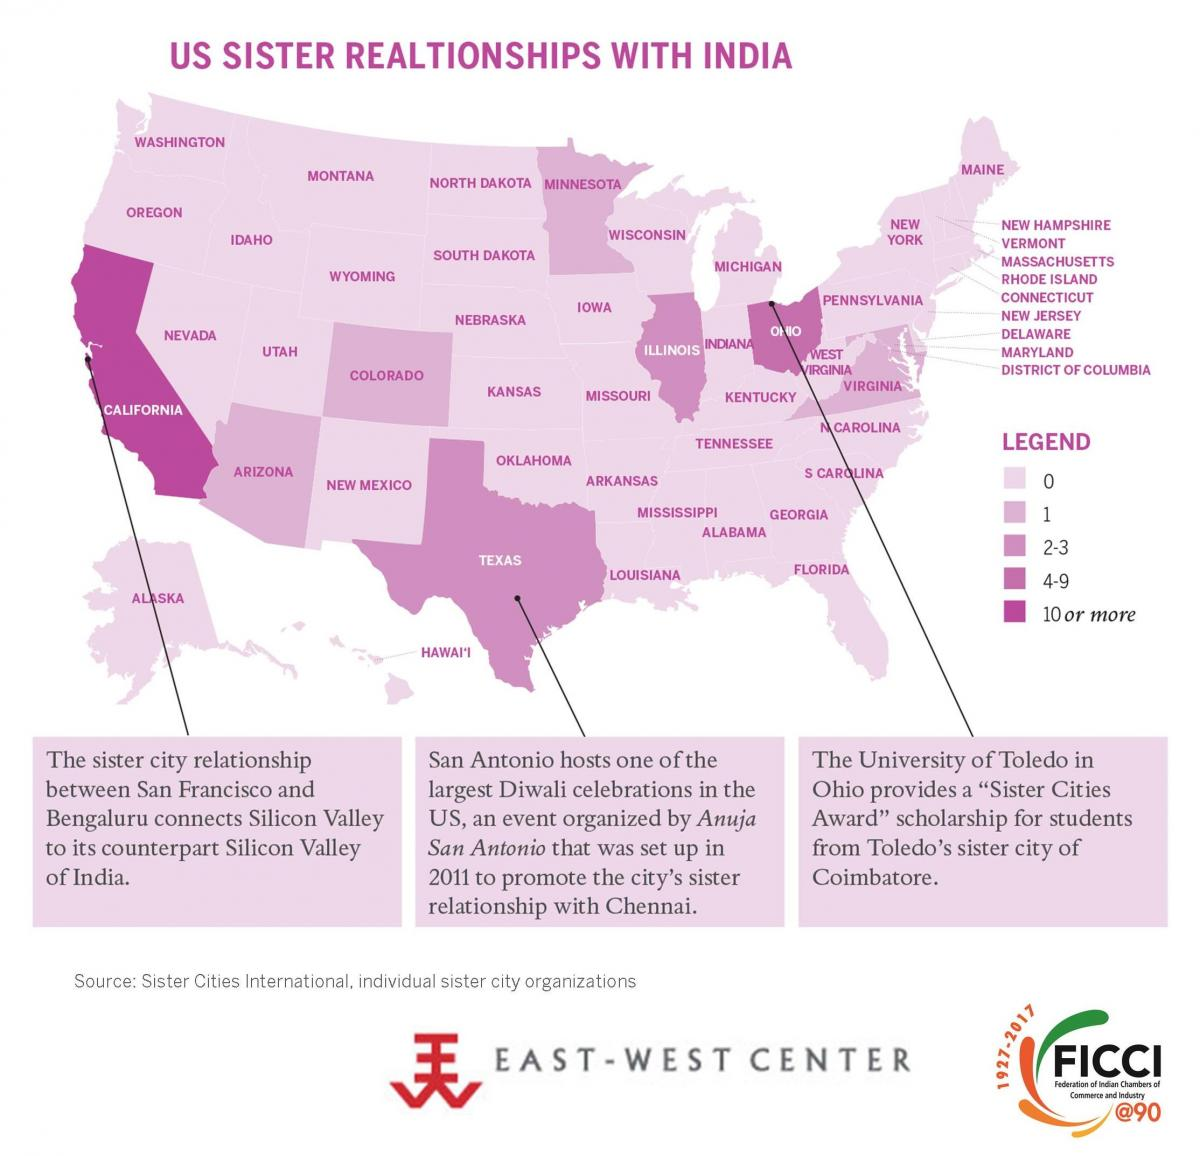 US Sister Relationships with India